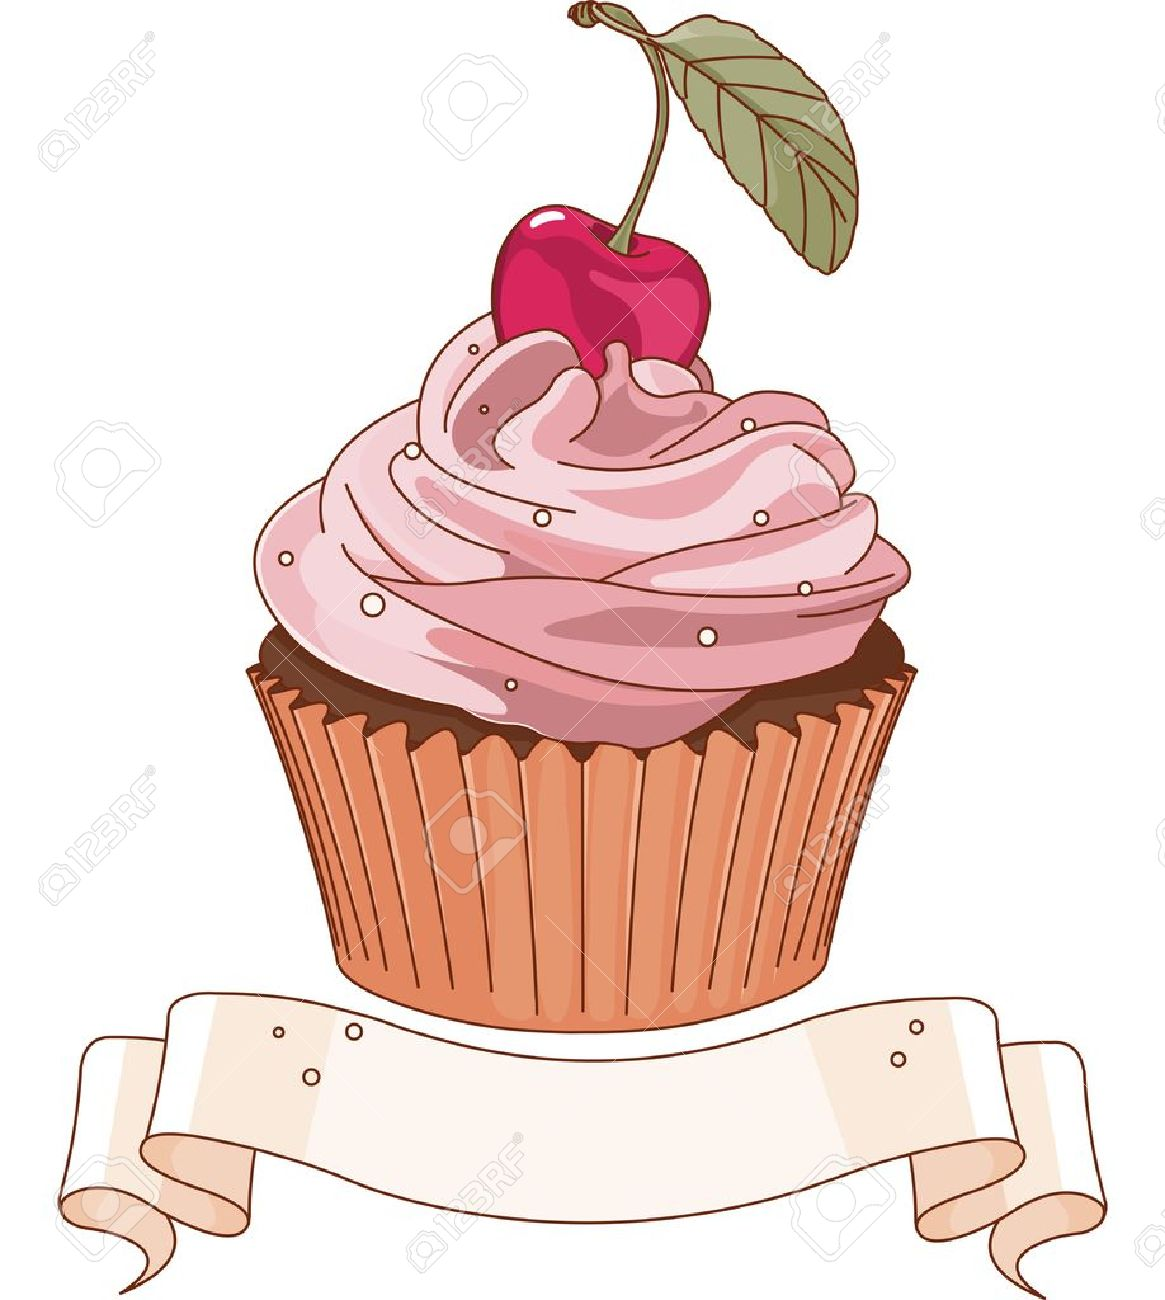 Beautiful cupcake with cherry on the top.